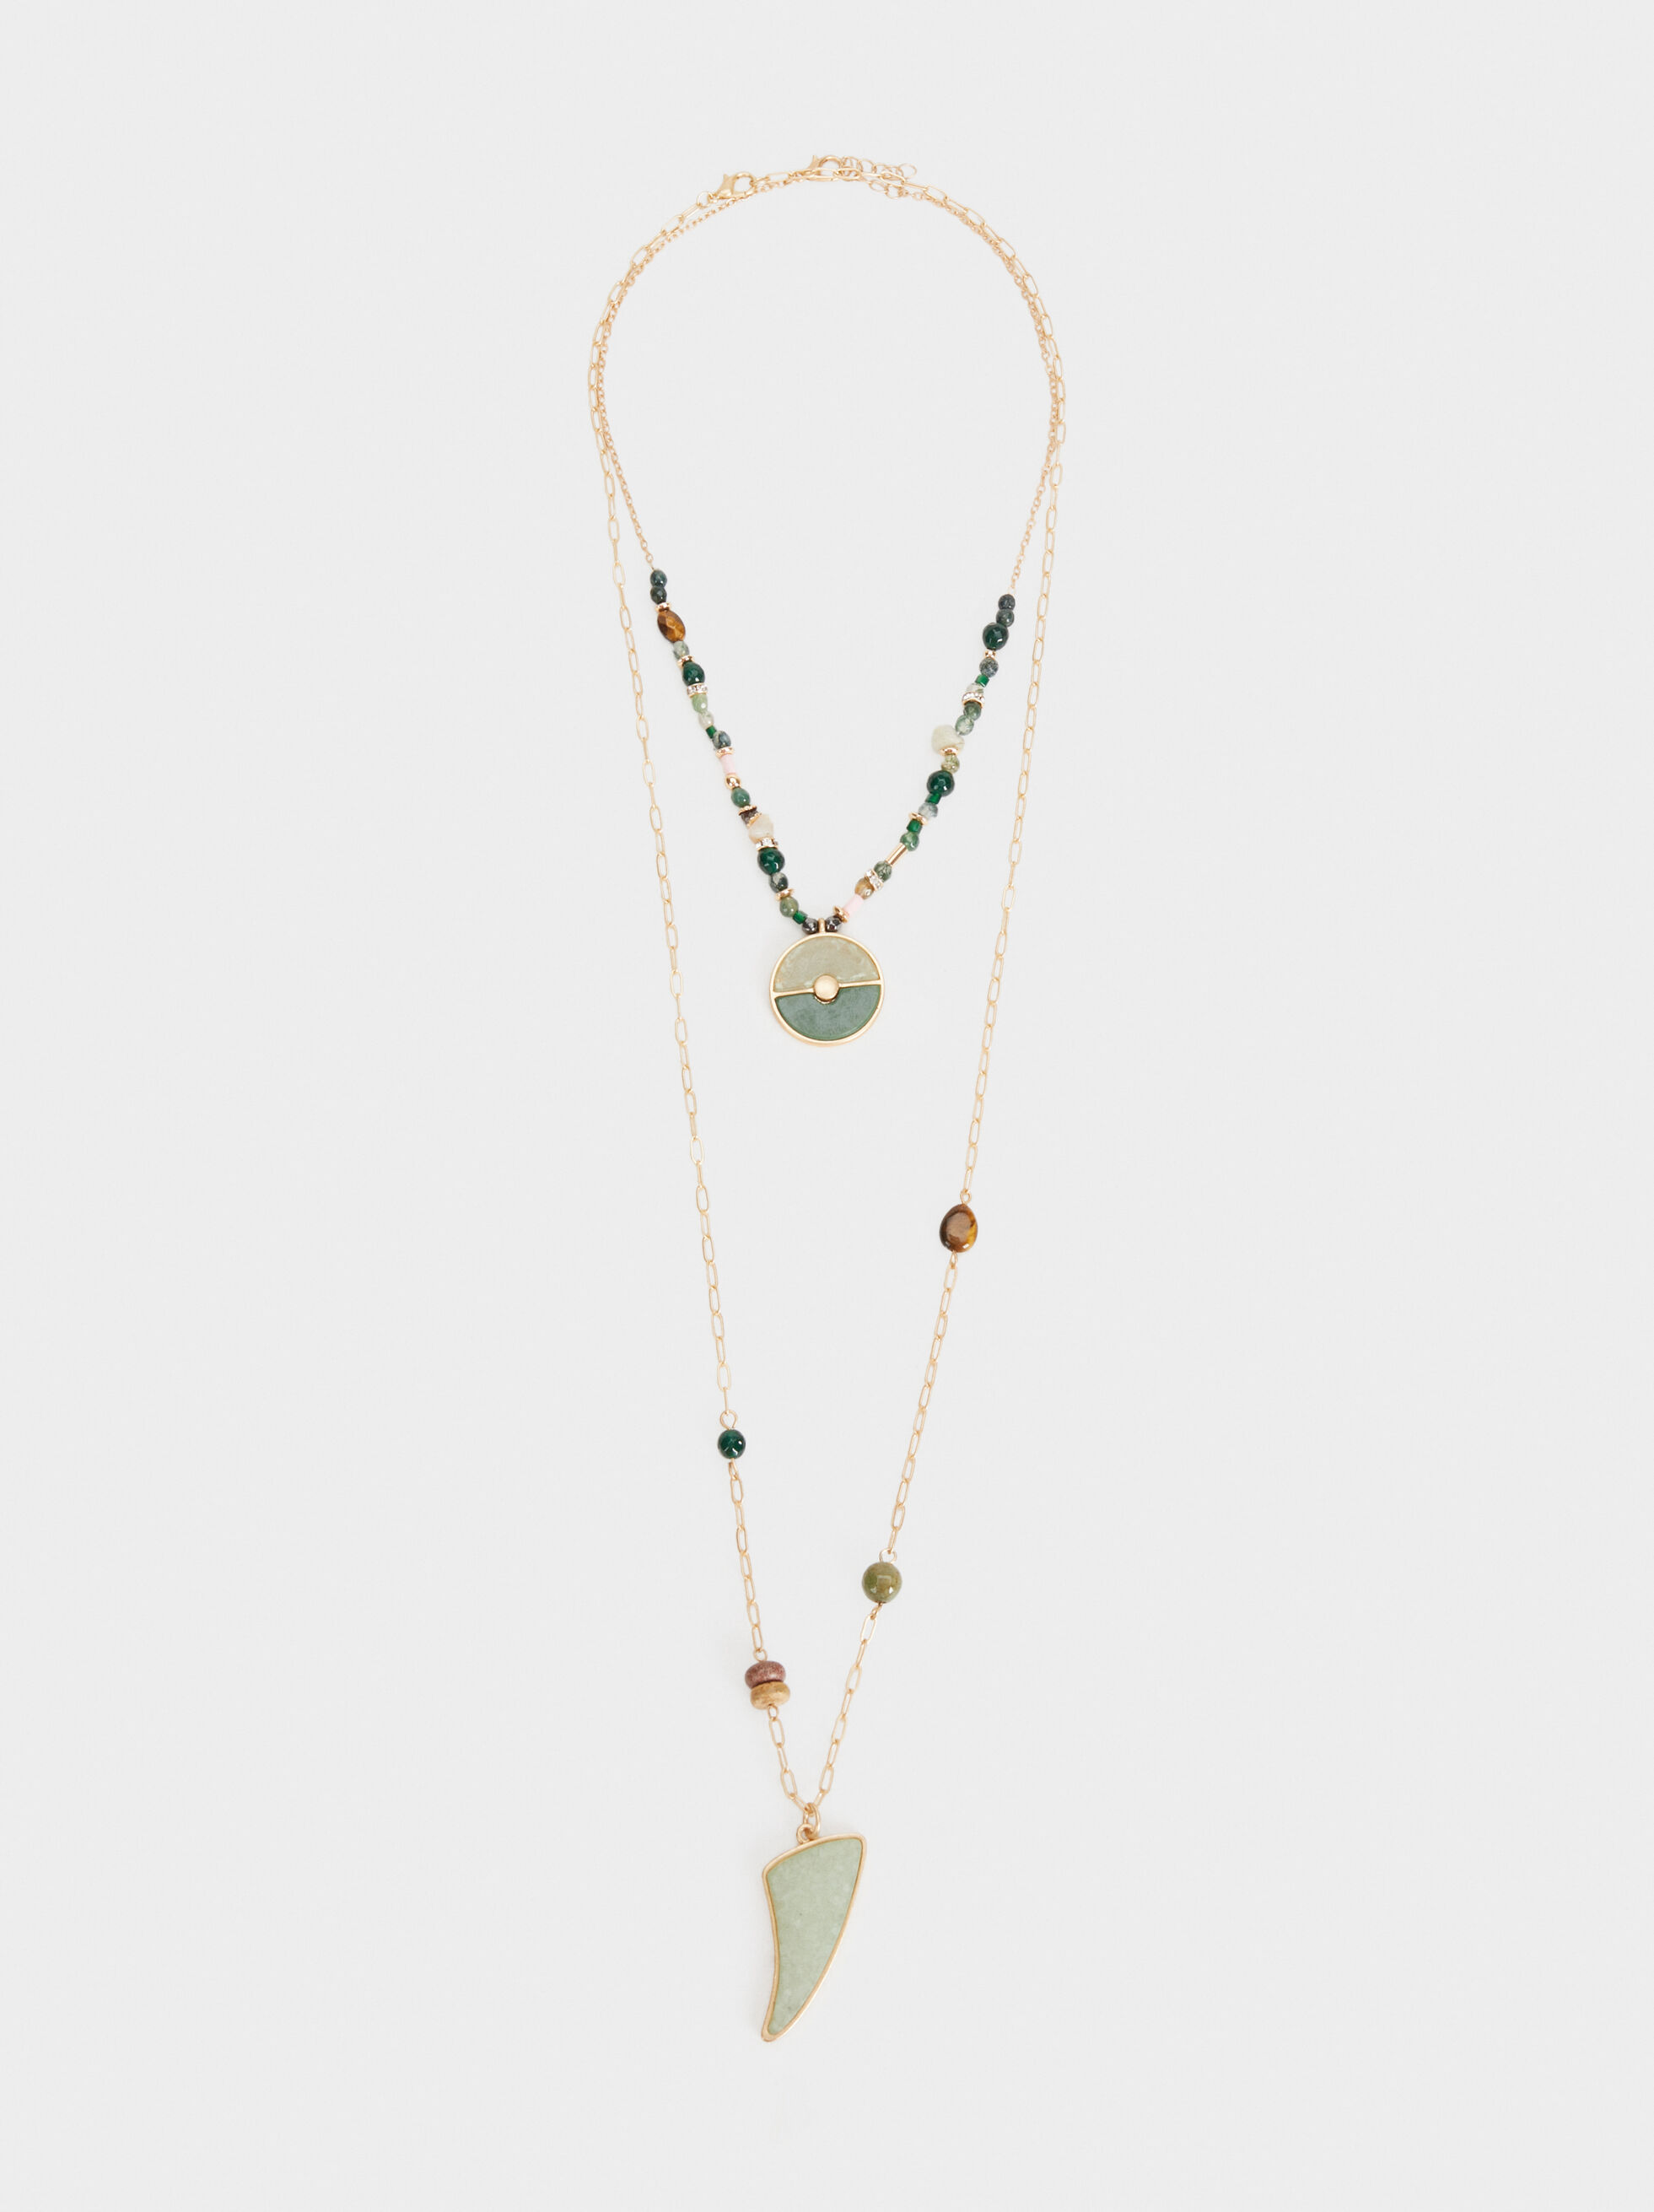 Stone Story Long Necklace With Pendant, Multicolor, hi-res